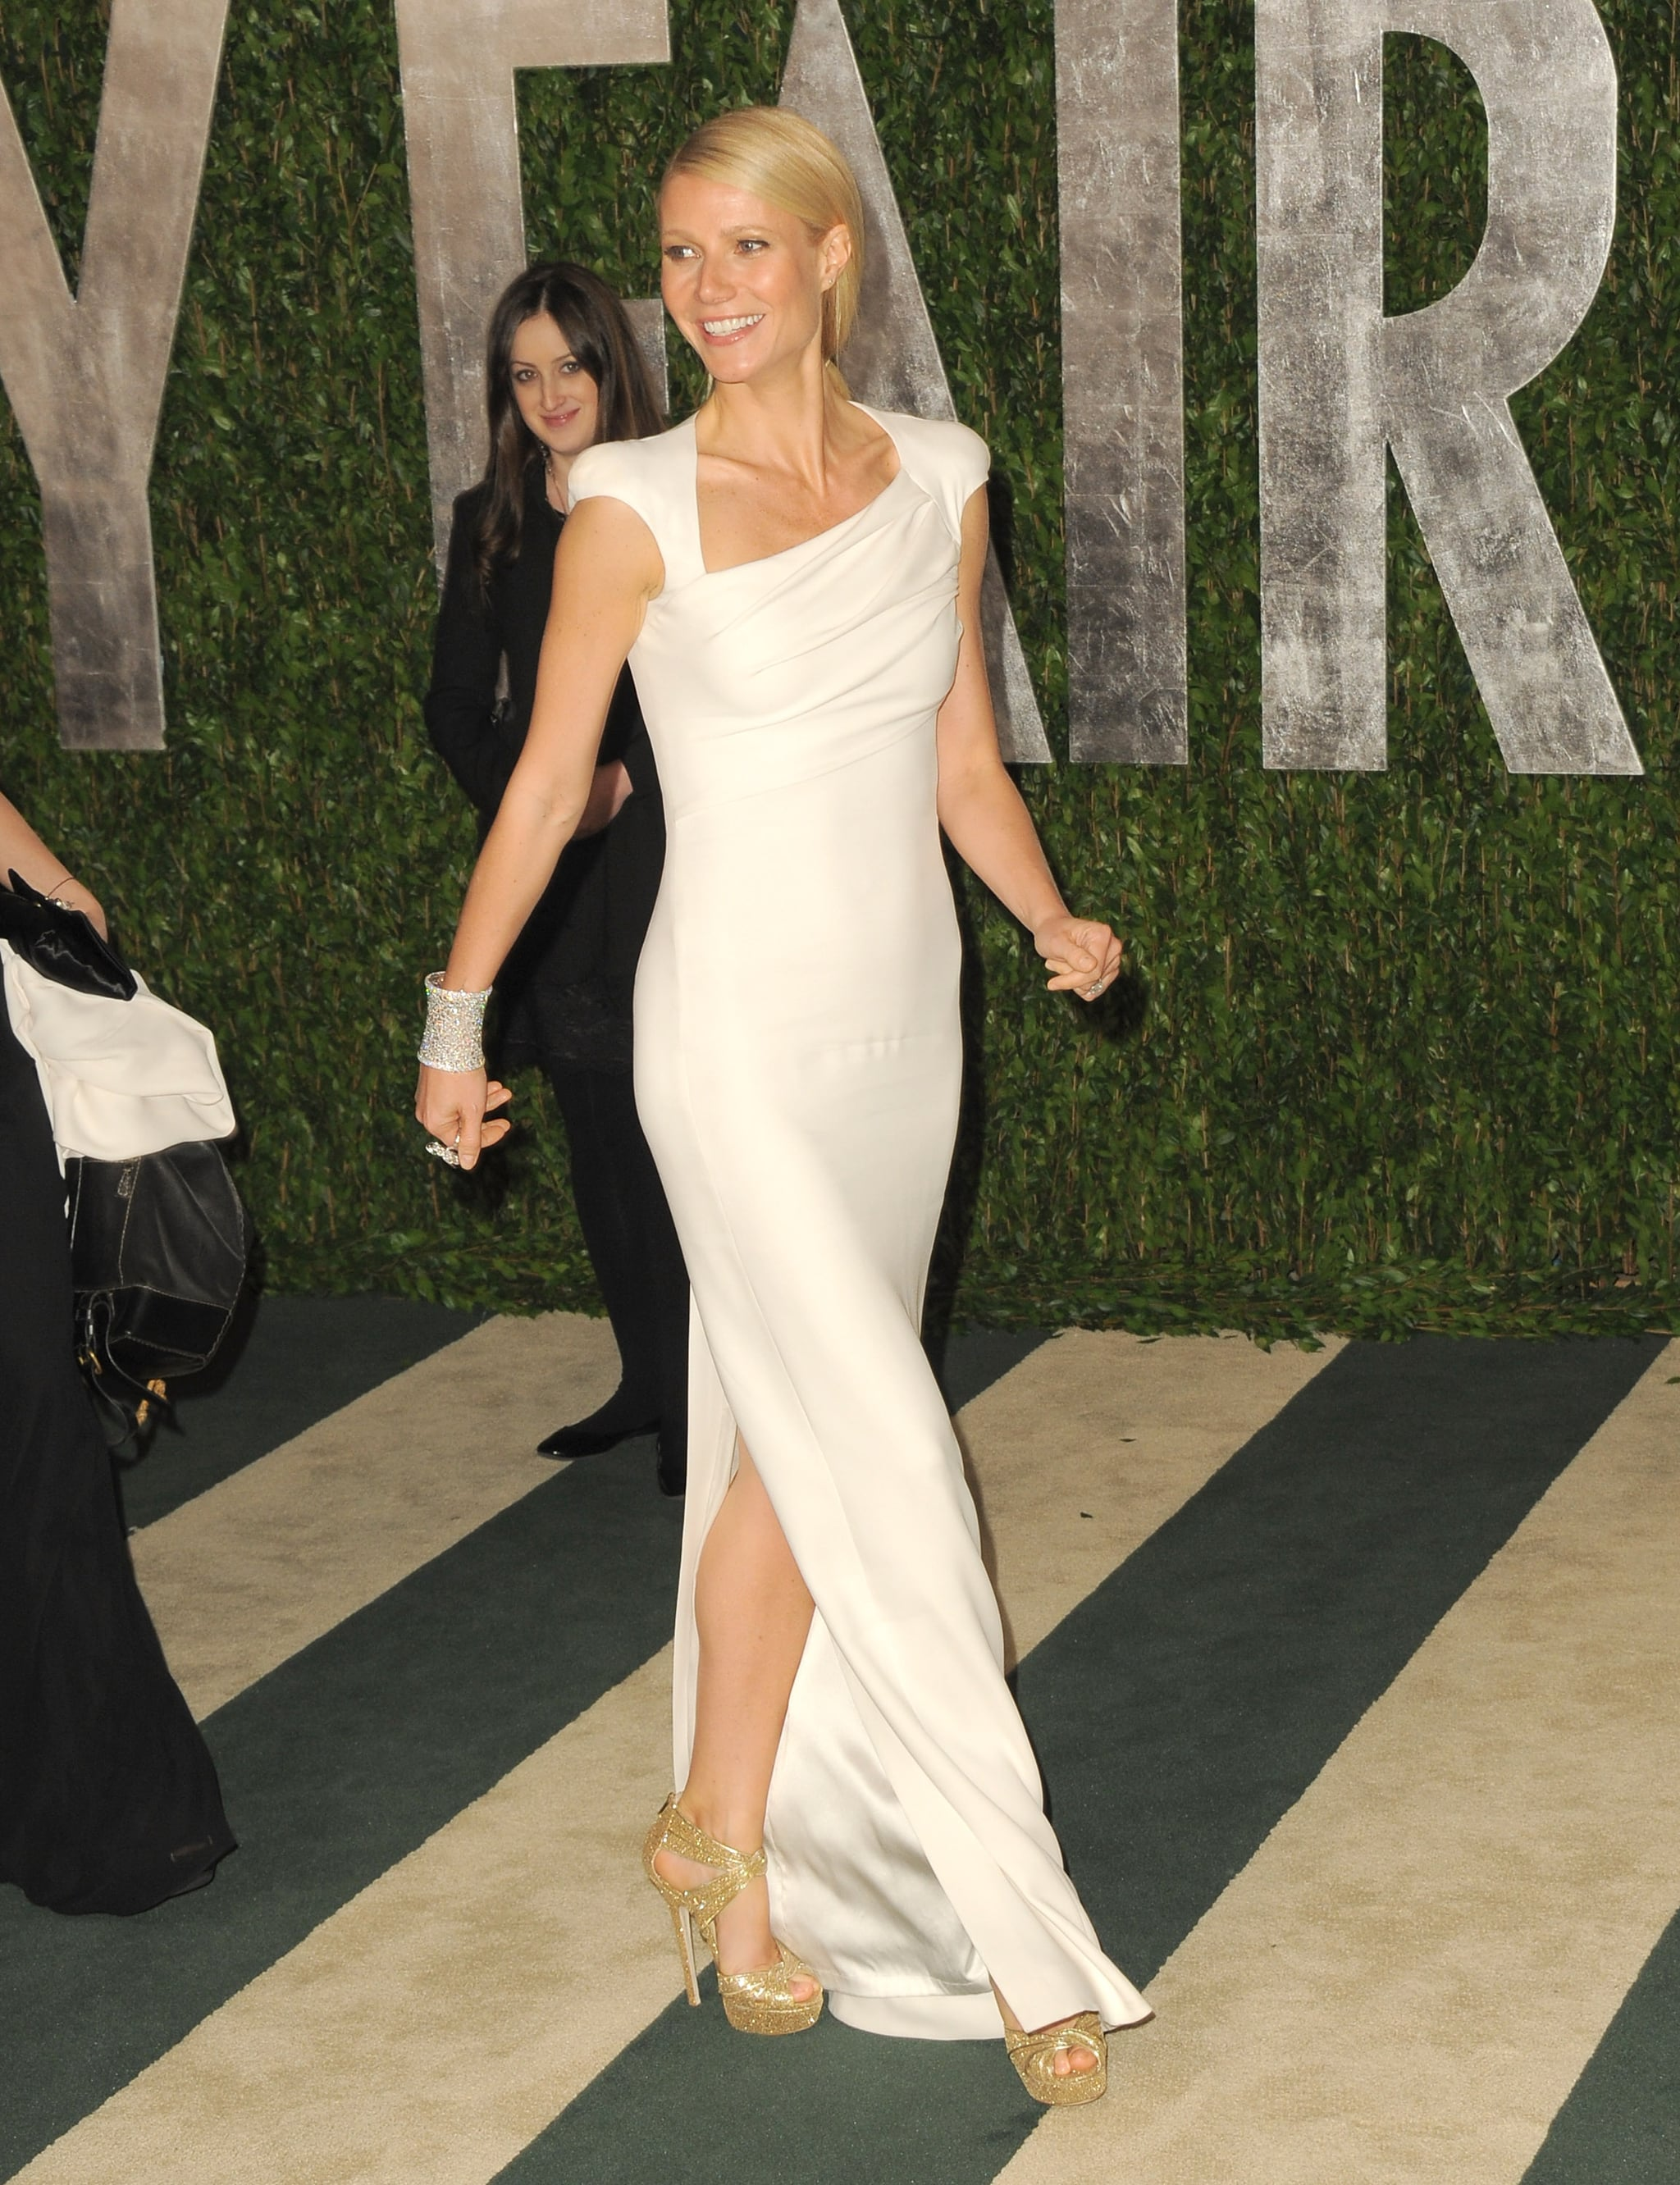 Gwyneth Paltrow makes her way down the Vanity Fair red carpet.